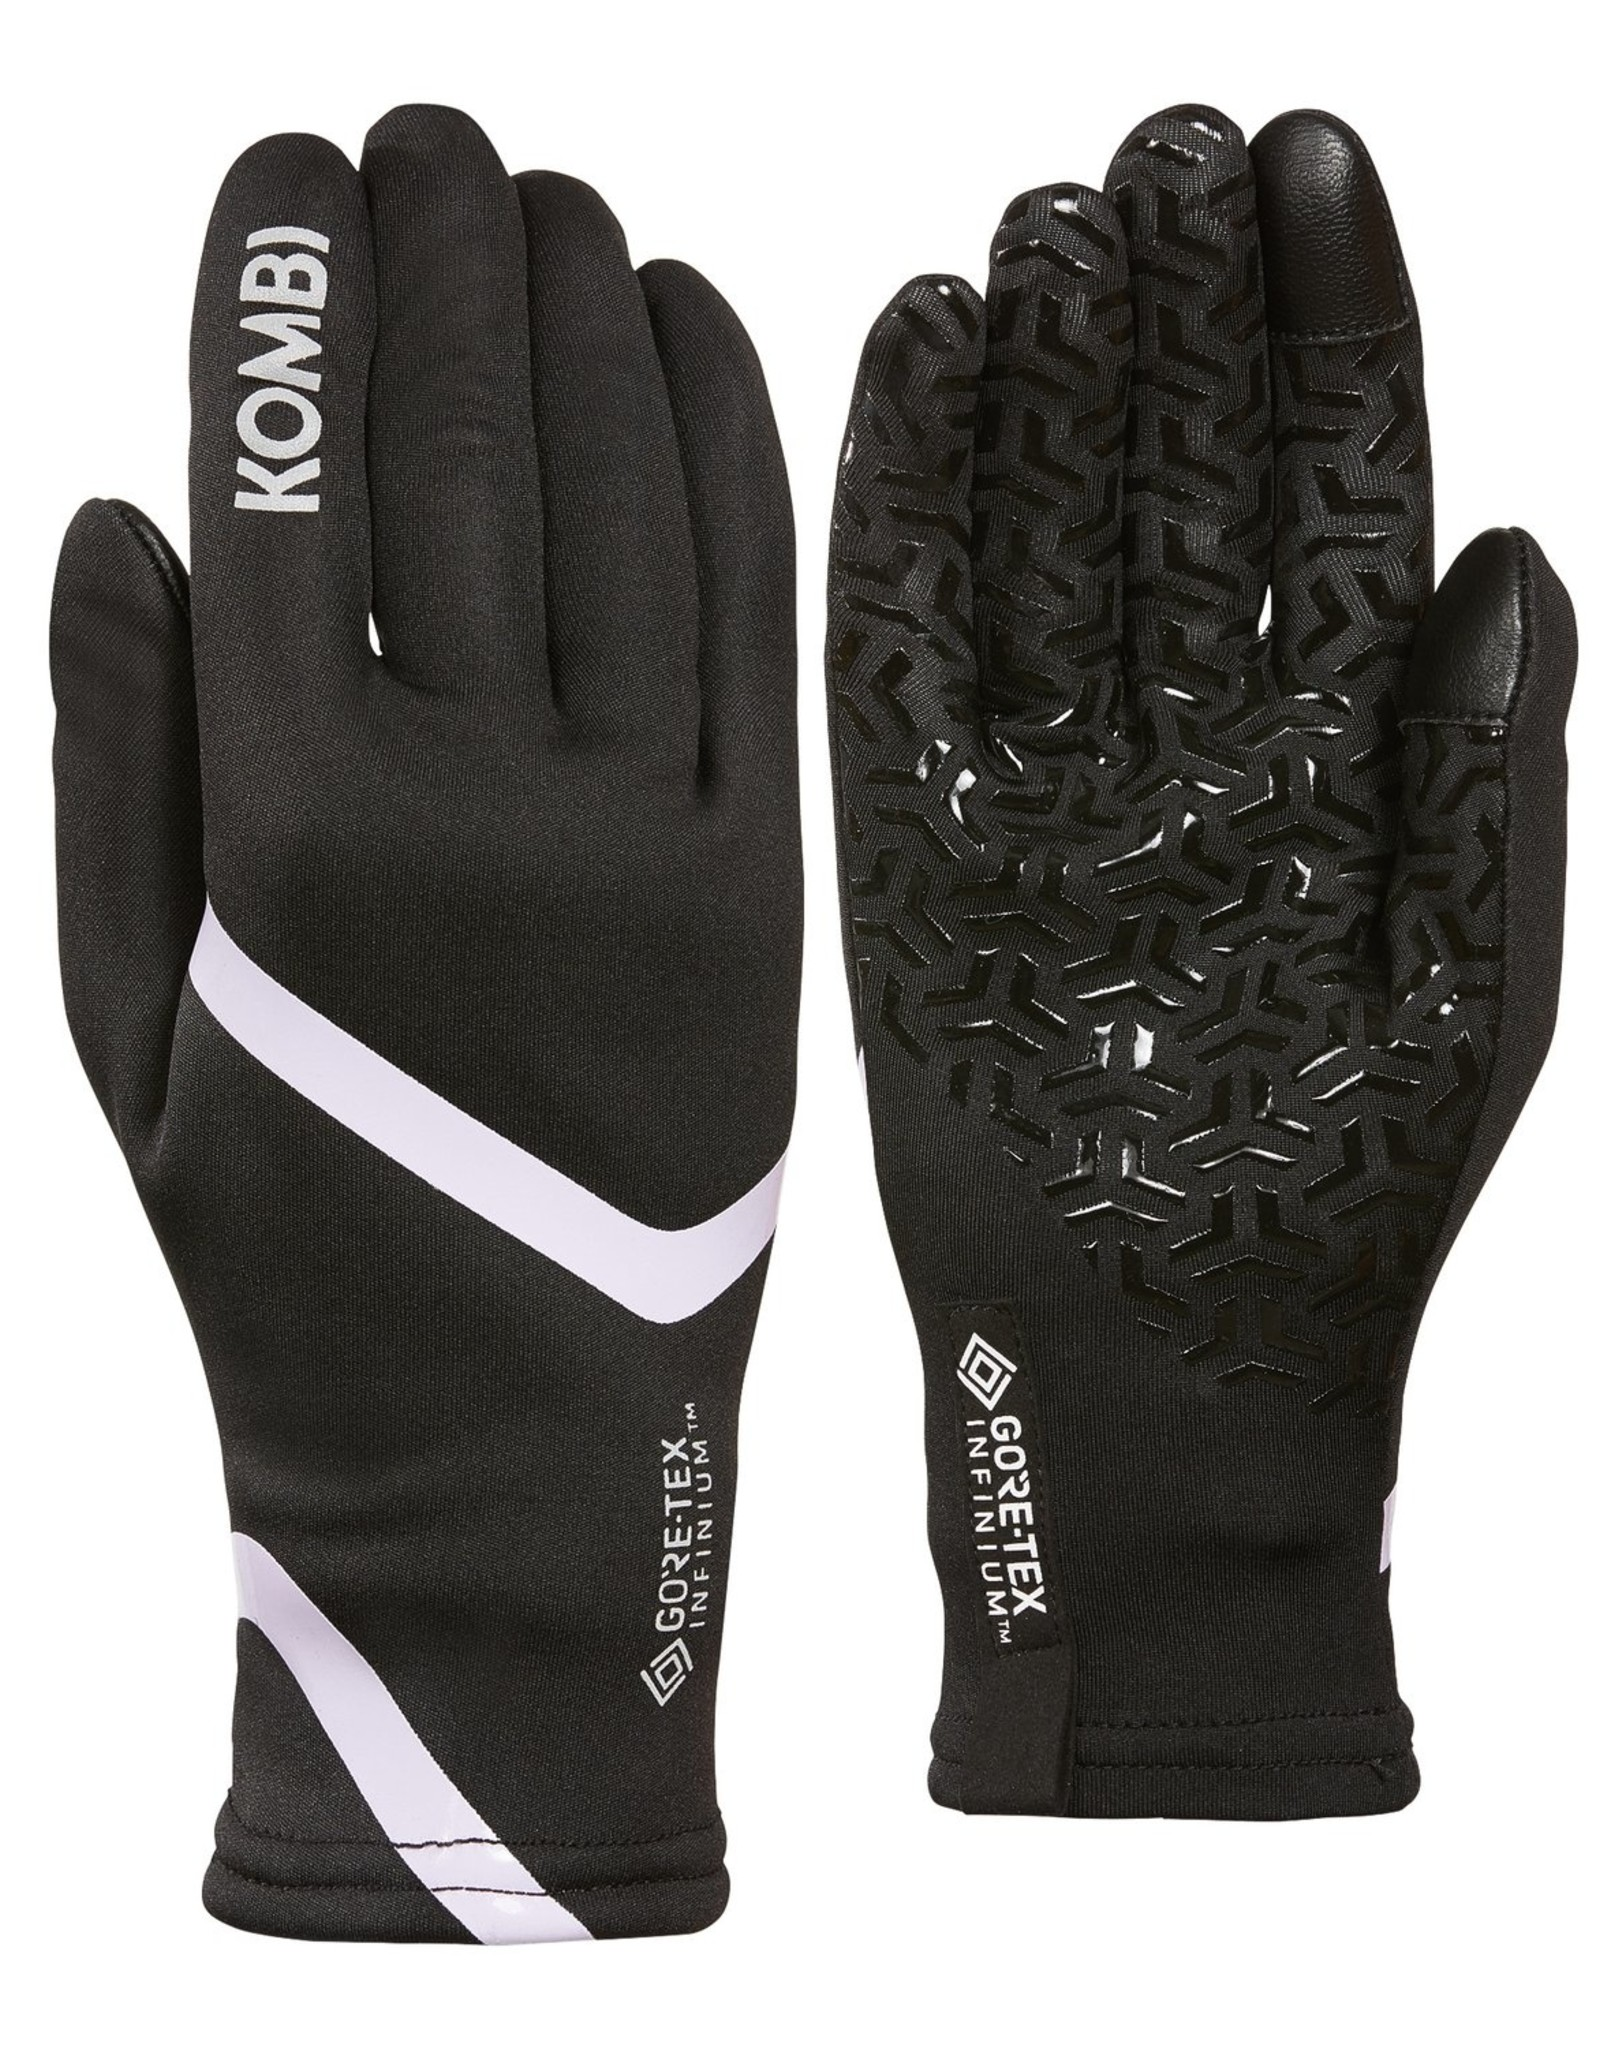 THE WRAP ADULT GLOVE 43683